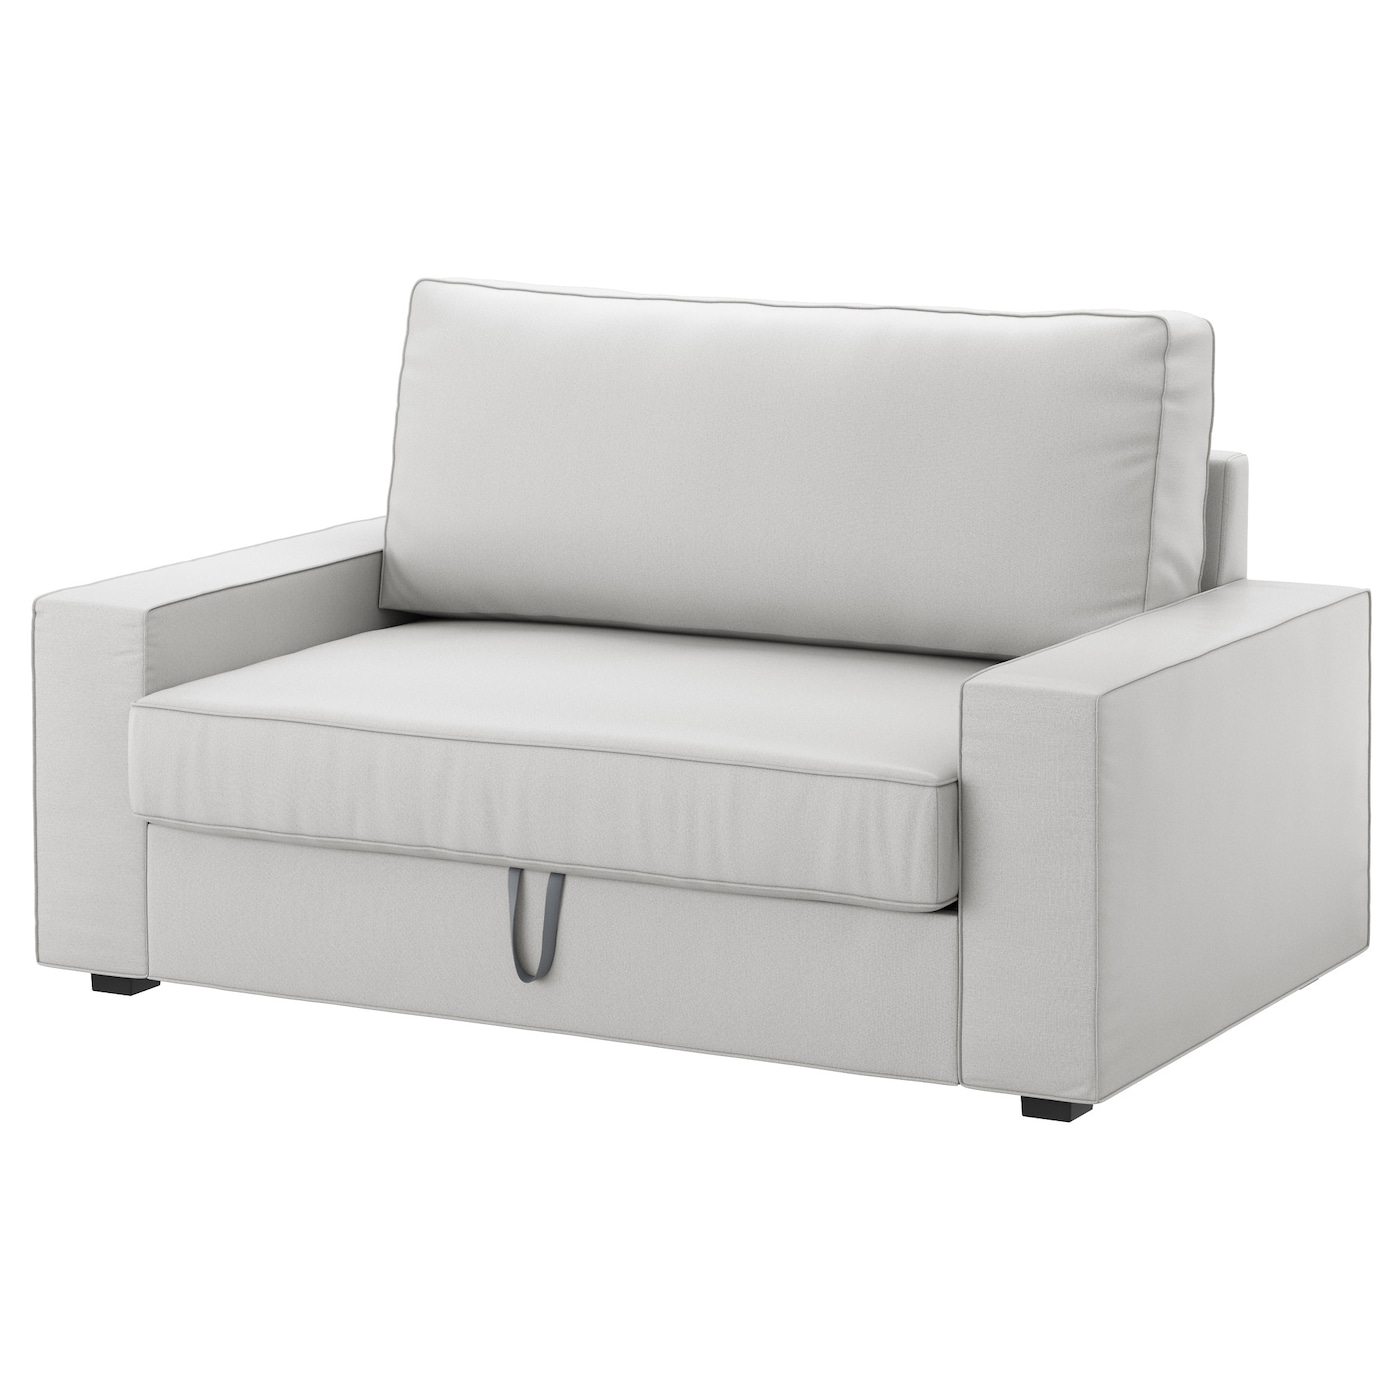 Vilasund two seat sofa bed ramna light grey ikea for Roche bobois canape lit